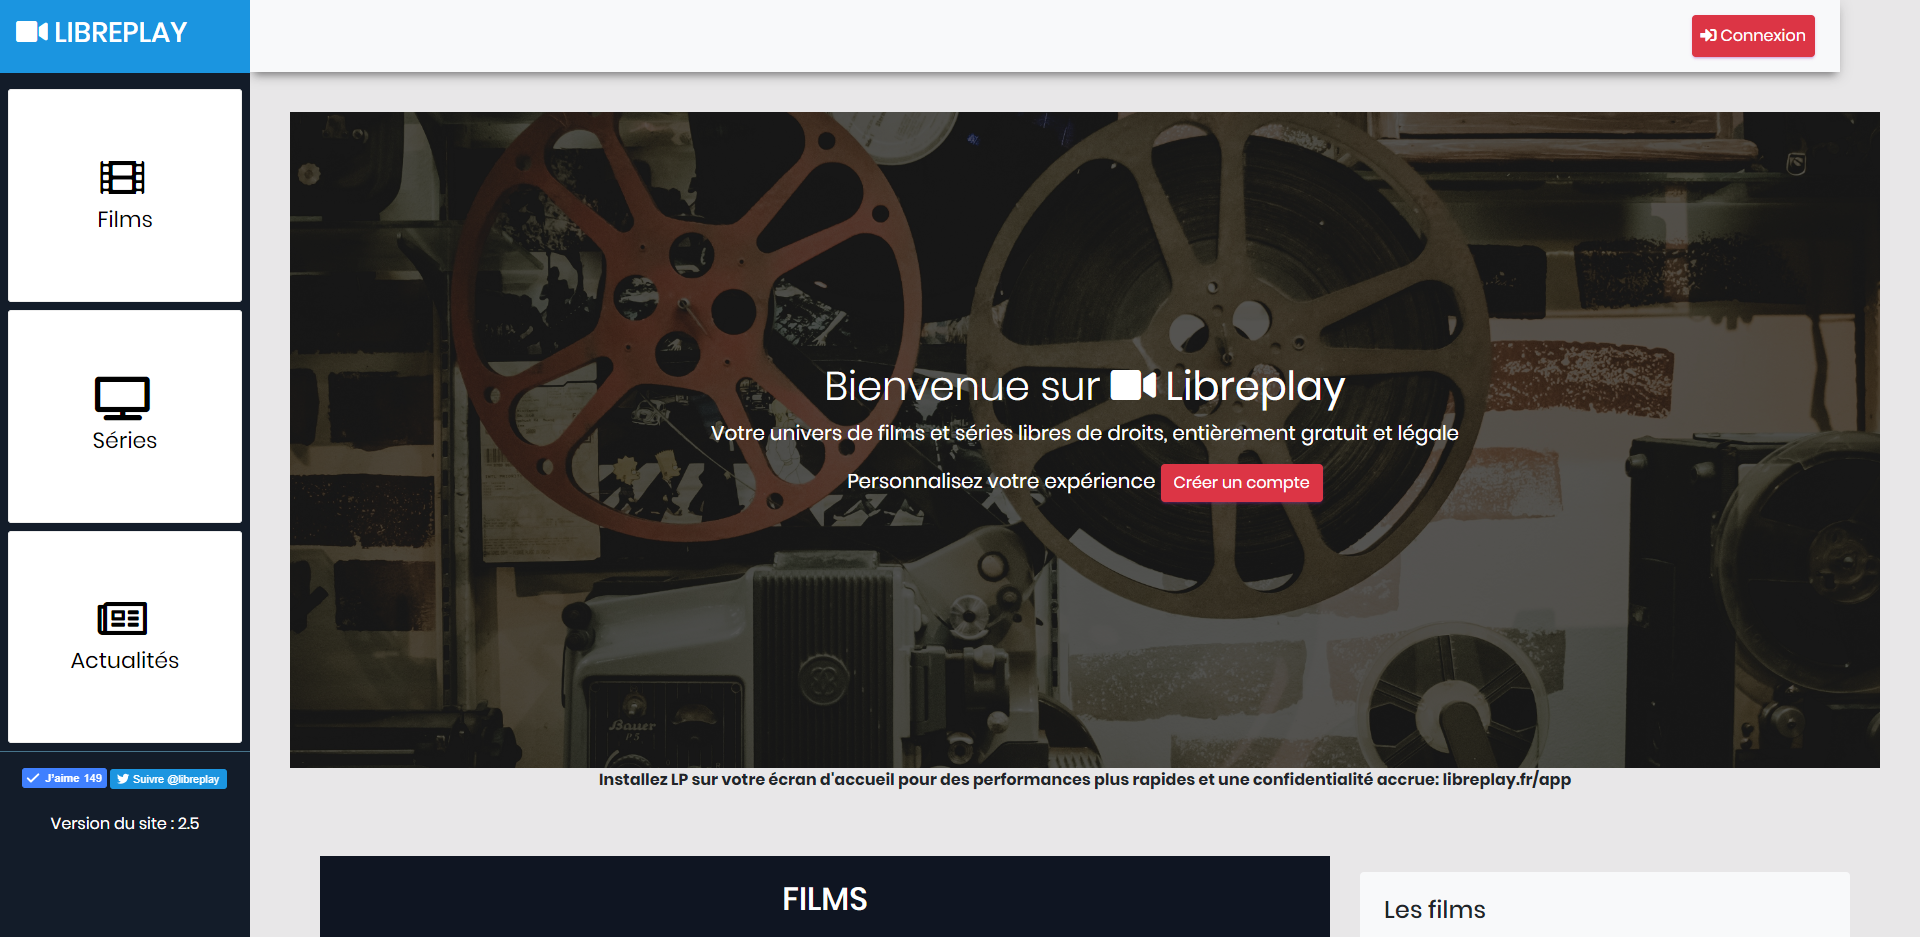 Plateforme Libreplay Fire-Shot-Capture-28-Accueil-Libreplay-Vos-films-et-s-ries-libres-https-www-libreplay-fr